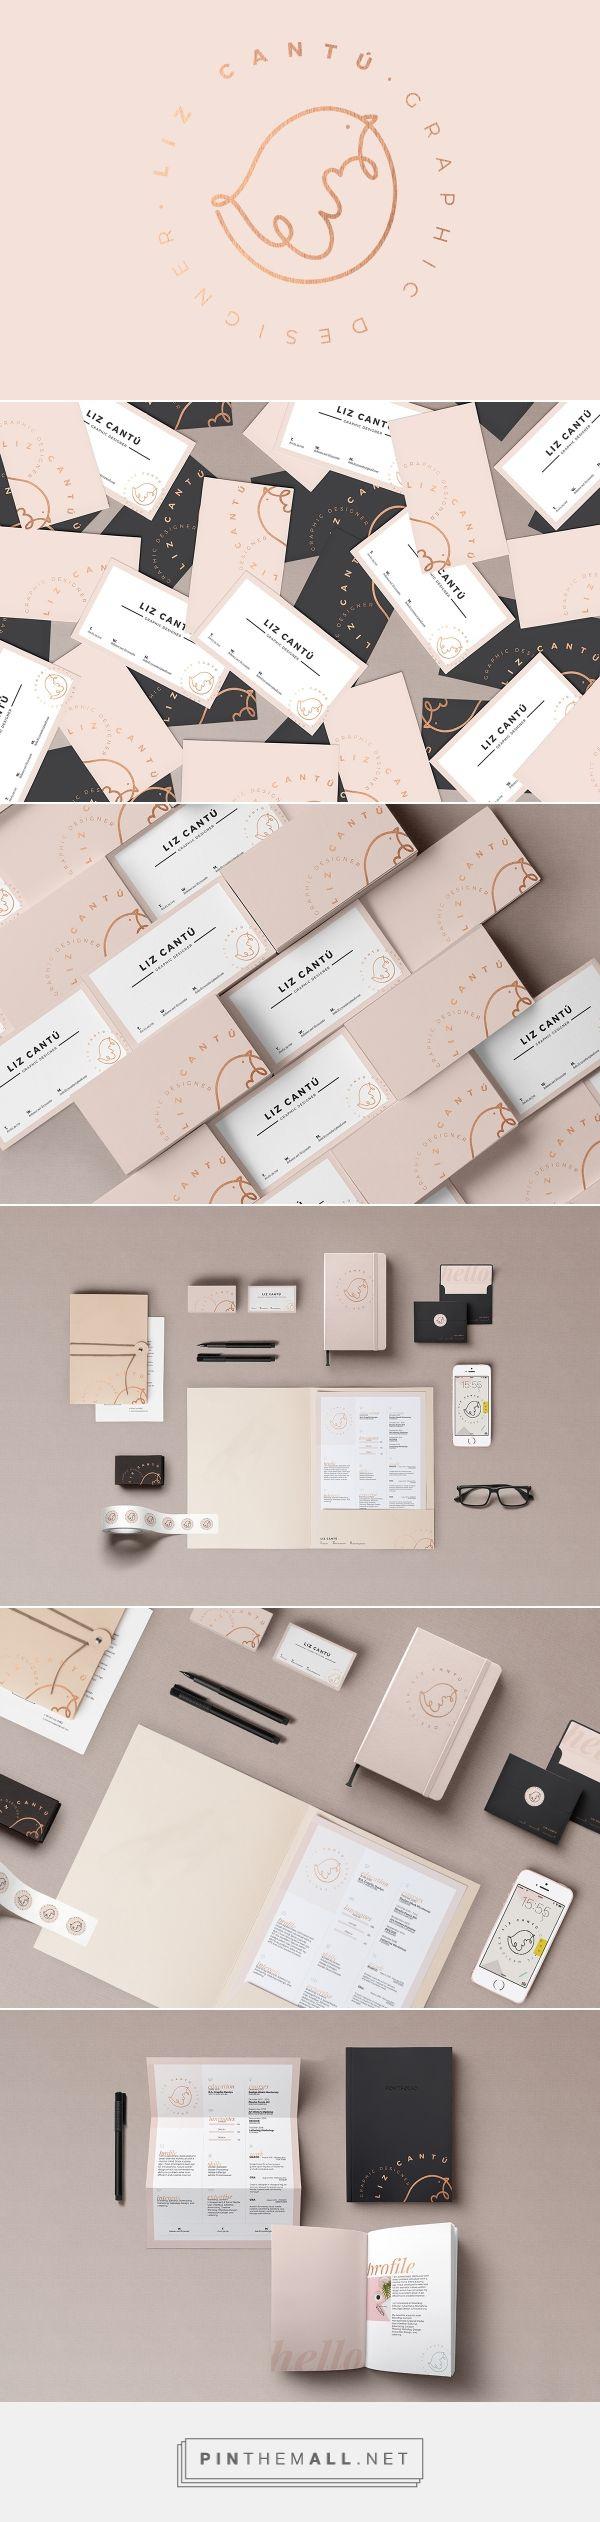 Lizzy Cantu Self Branding on Behance | Fivestar Branding – Design and Branding Agency & Inspiration Gallery